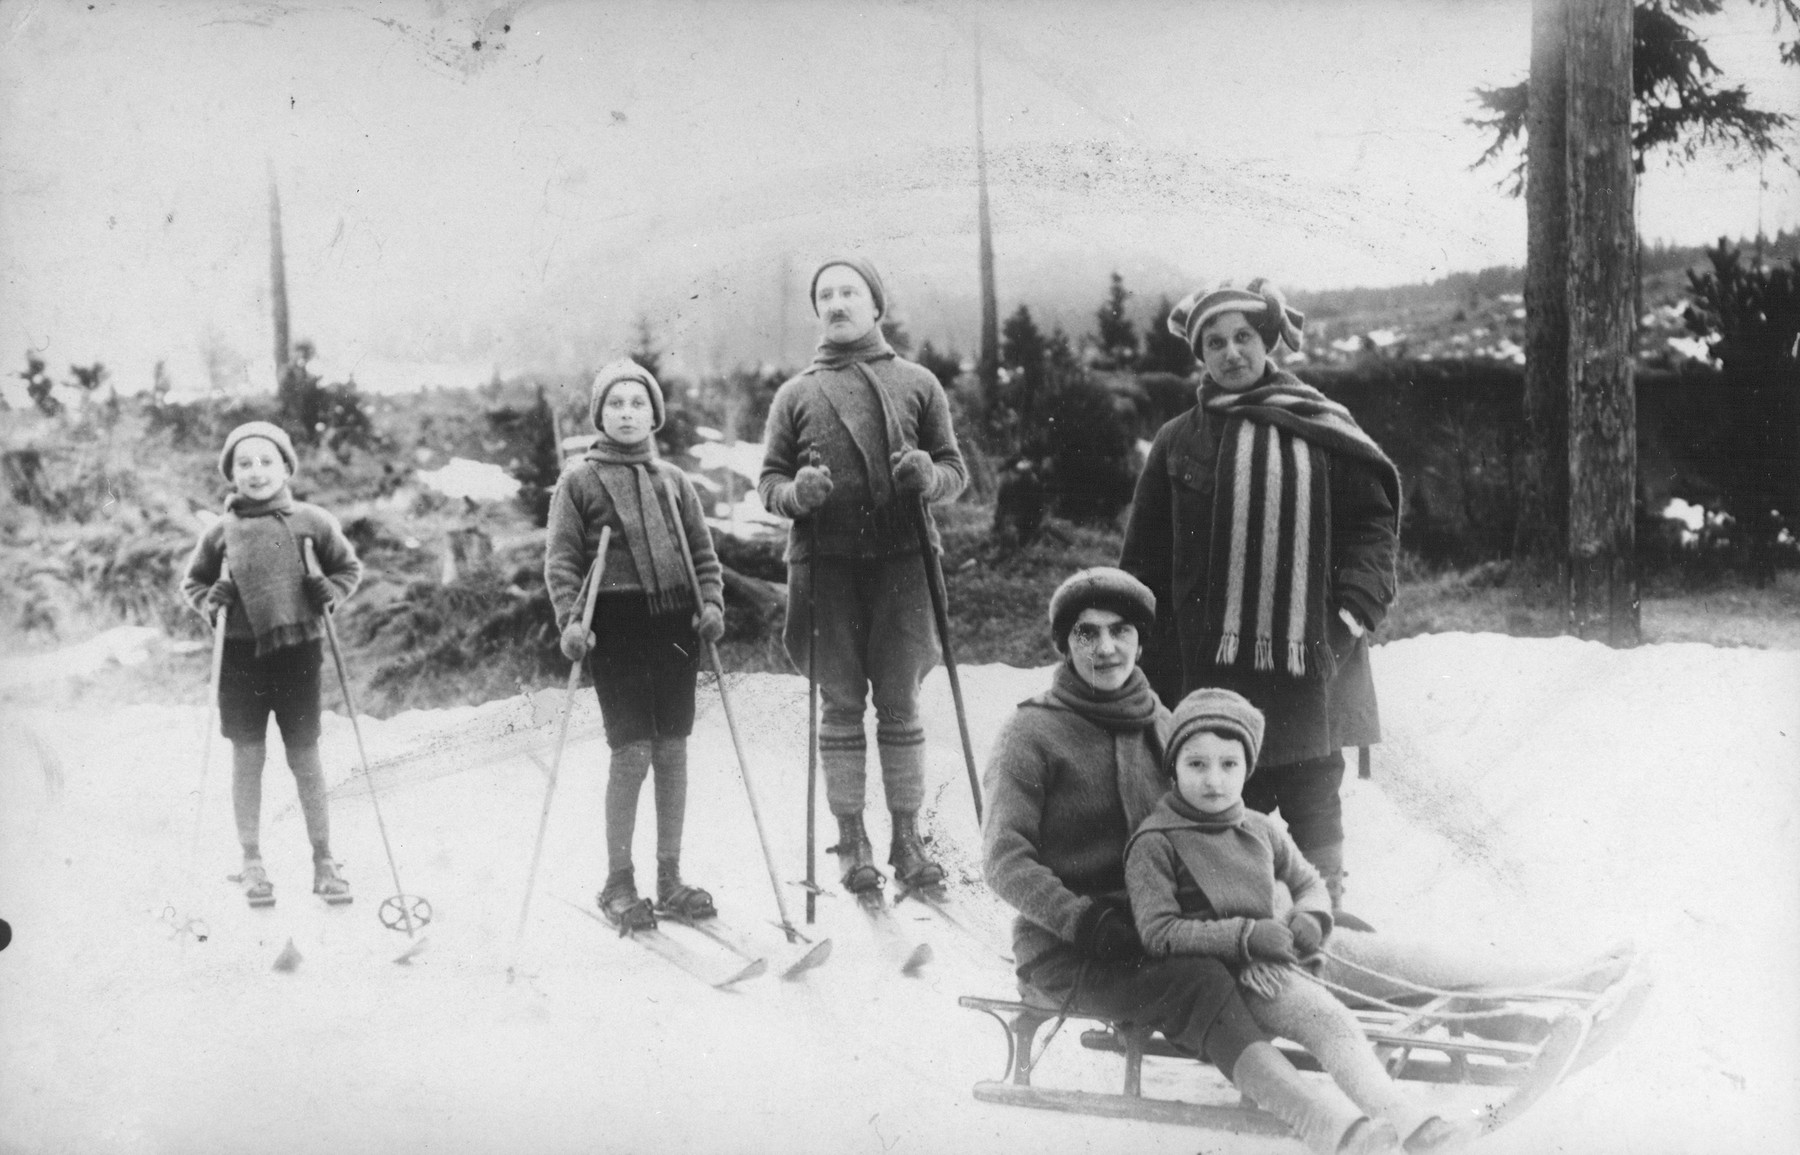 The Kohn family on a skiing vacation.  Pictured standing from left to right are: Erich, Walter, Viktor and Emilia.  Seated are Fraulein Zempanek (Ruth's caretaker) and Ruth.